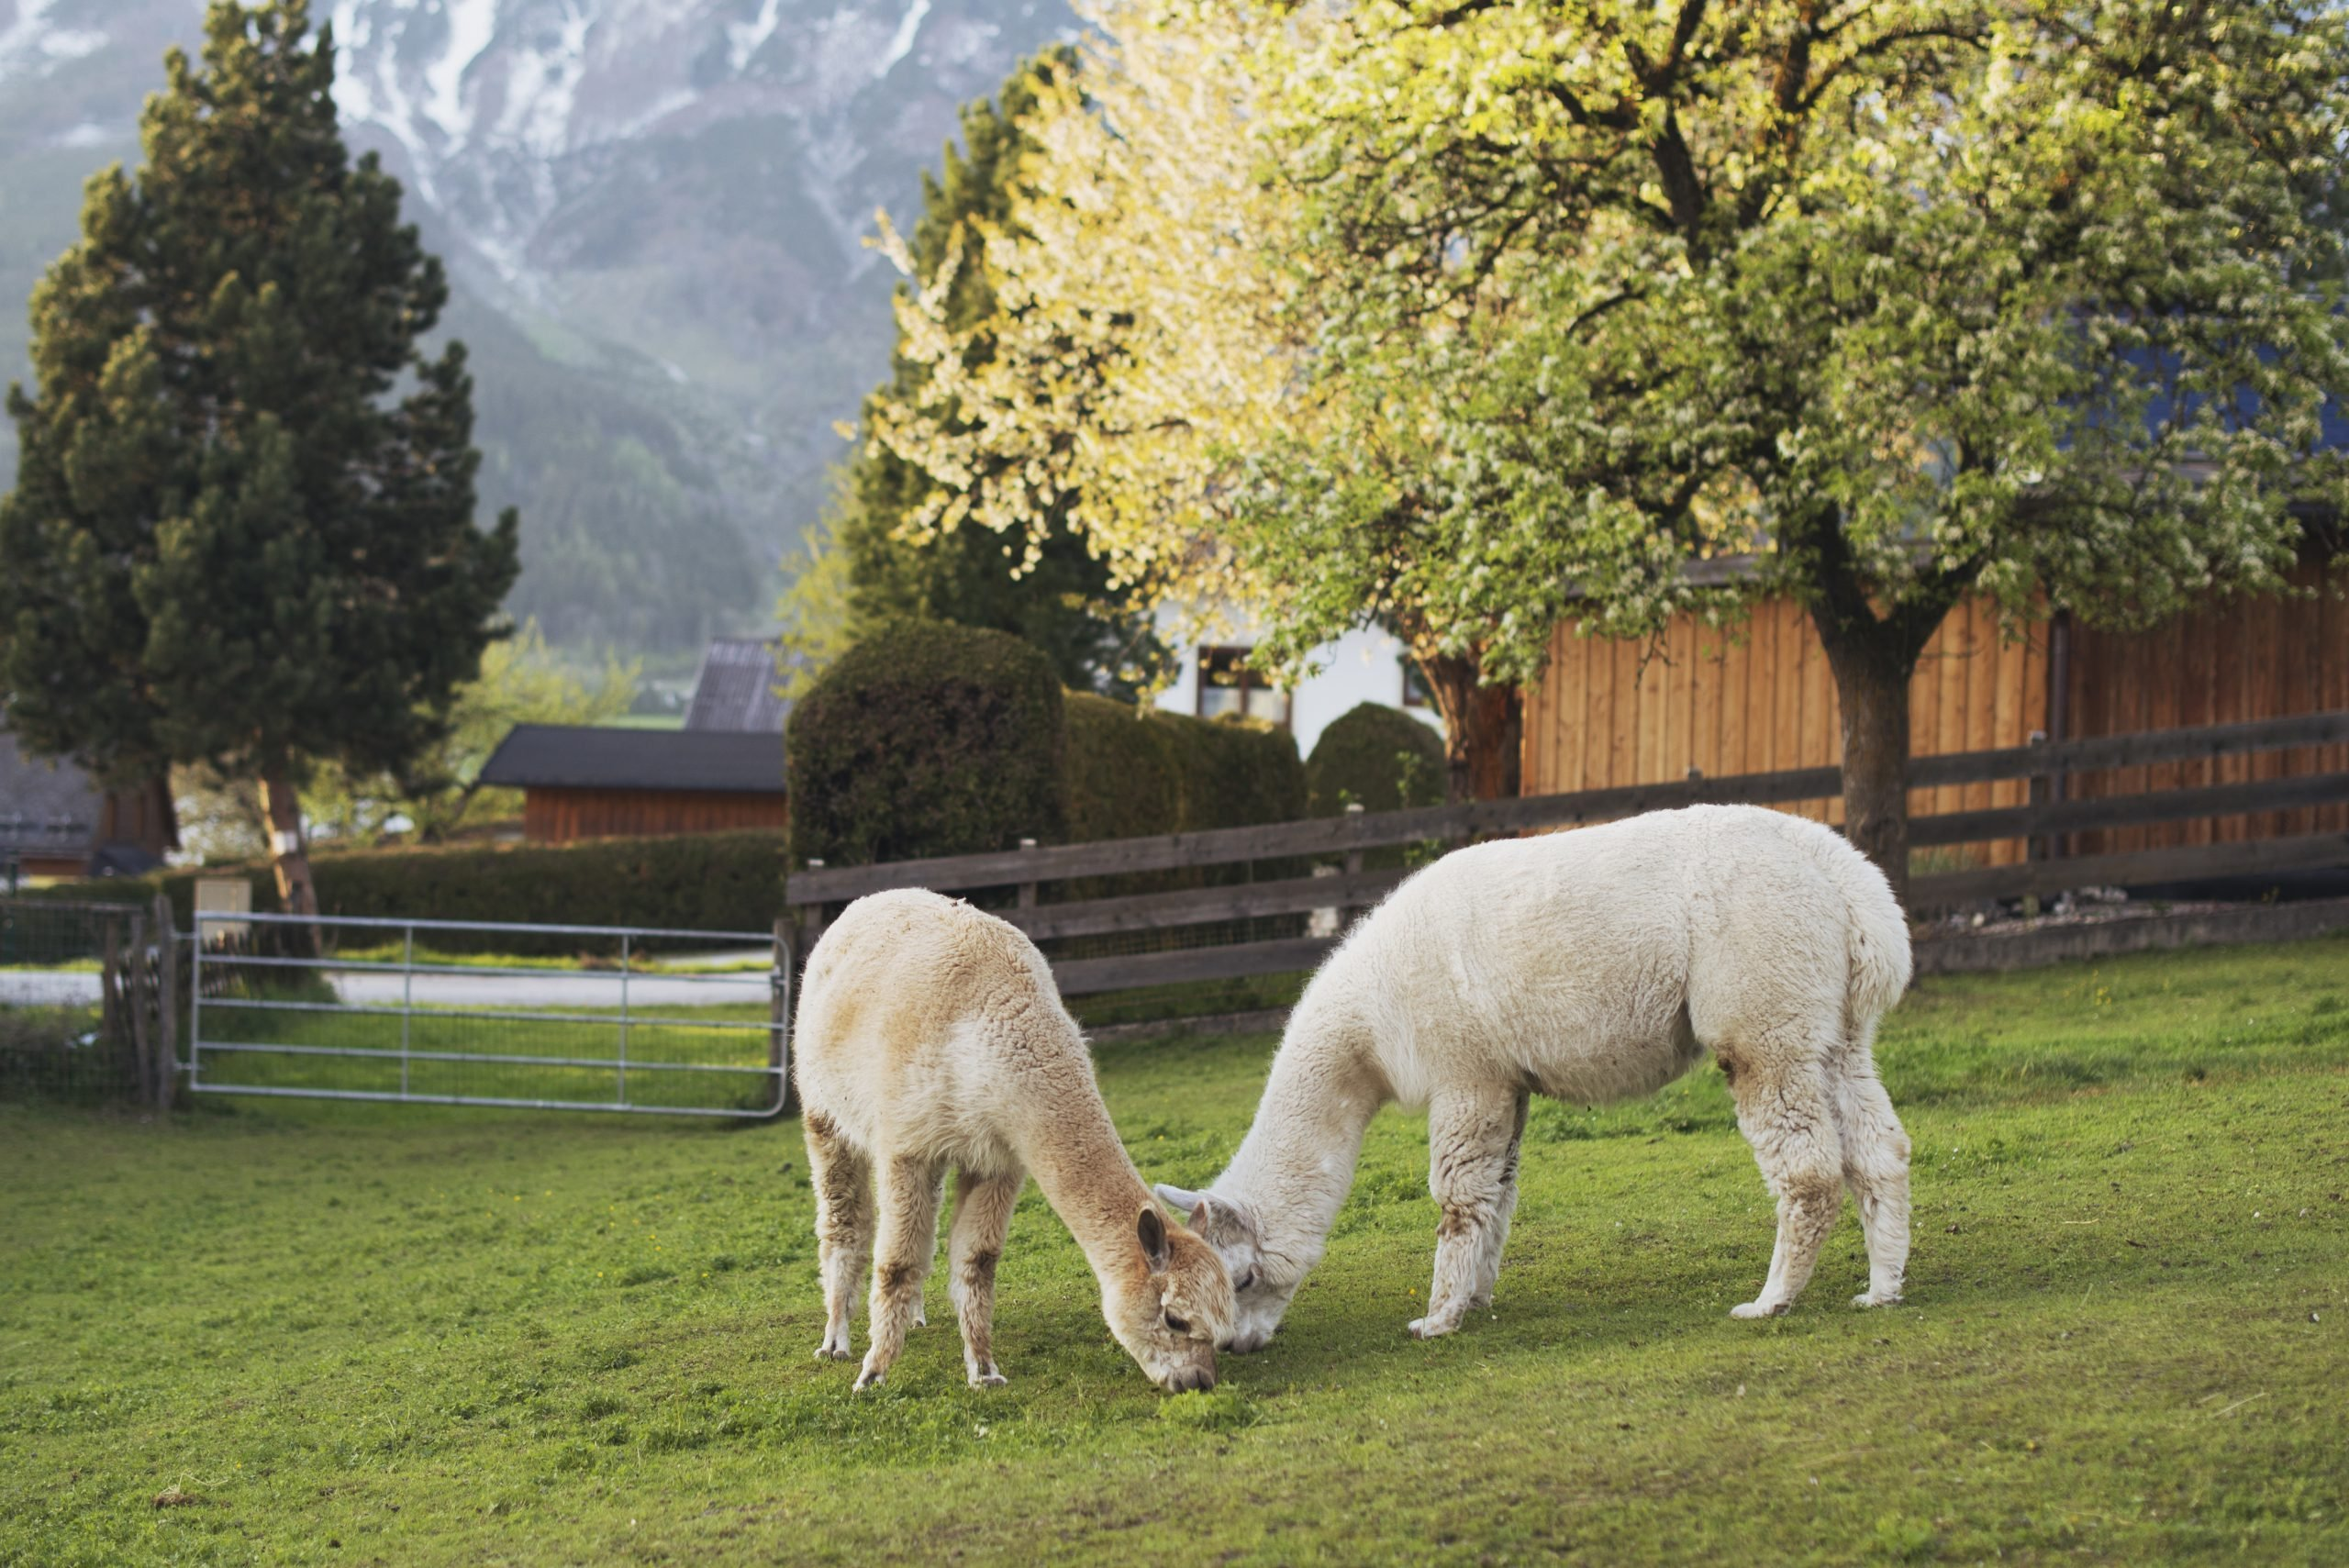 Two young alpacas graze and feed on a lawn